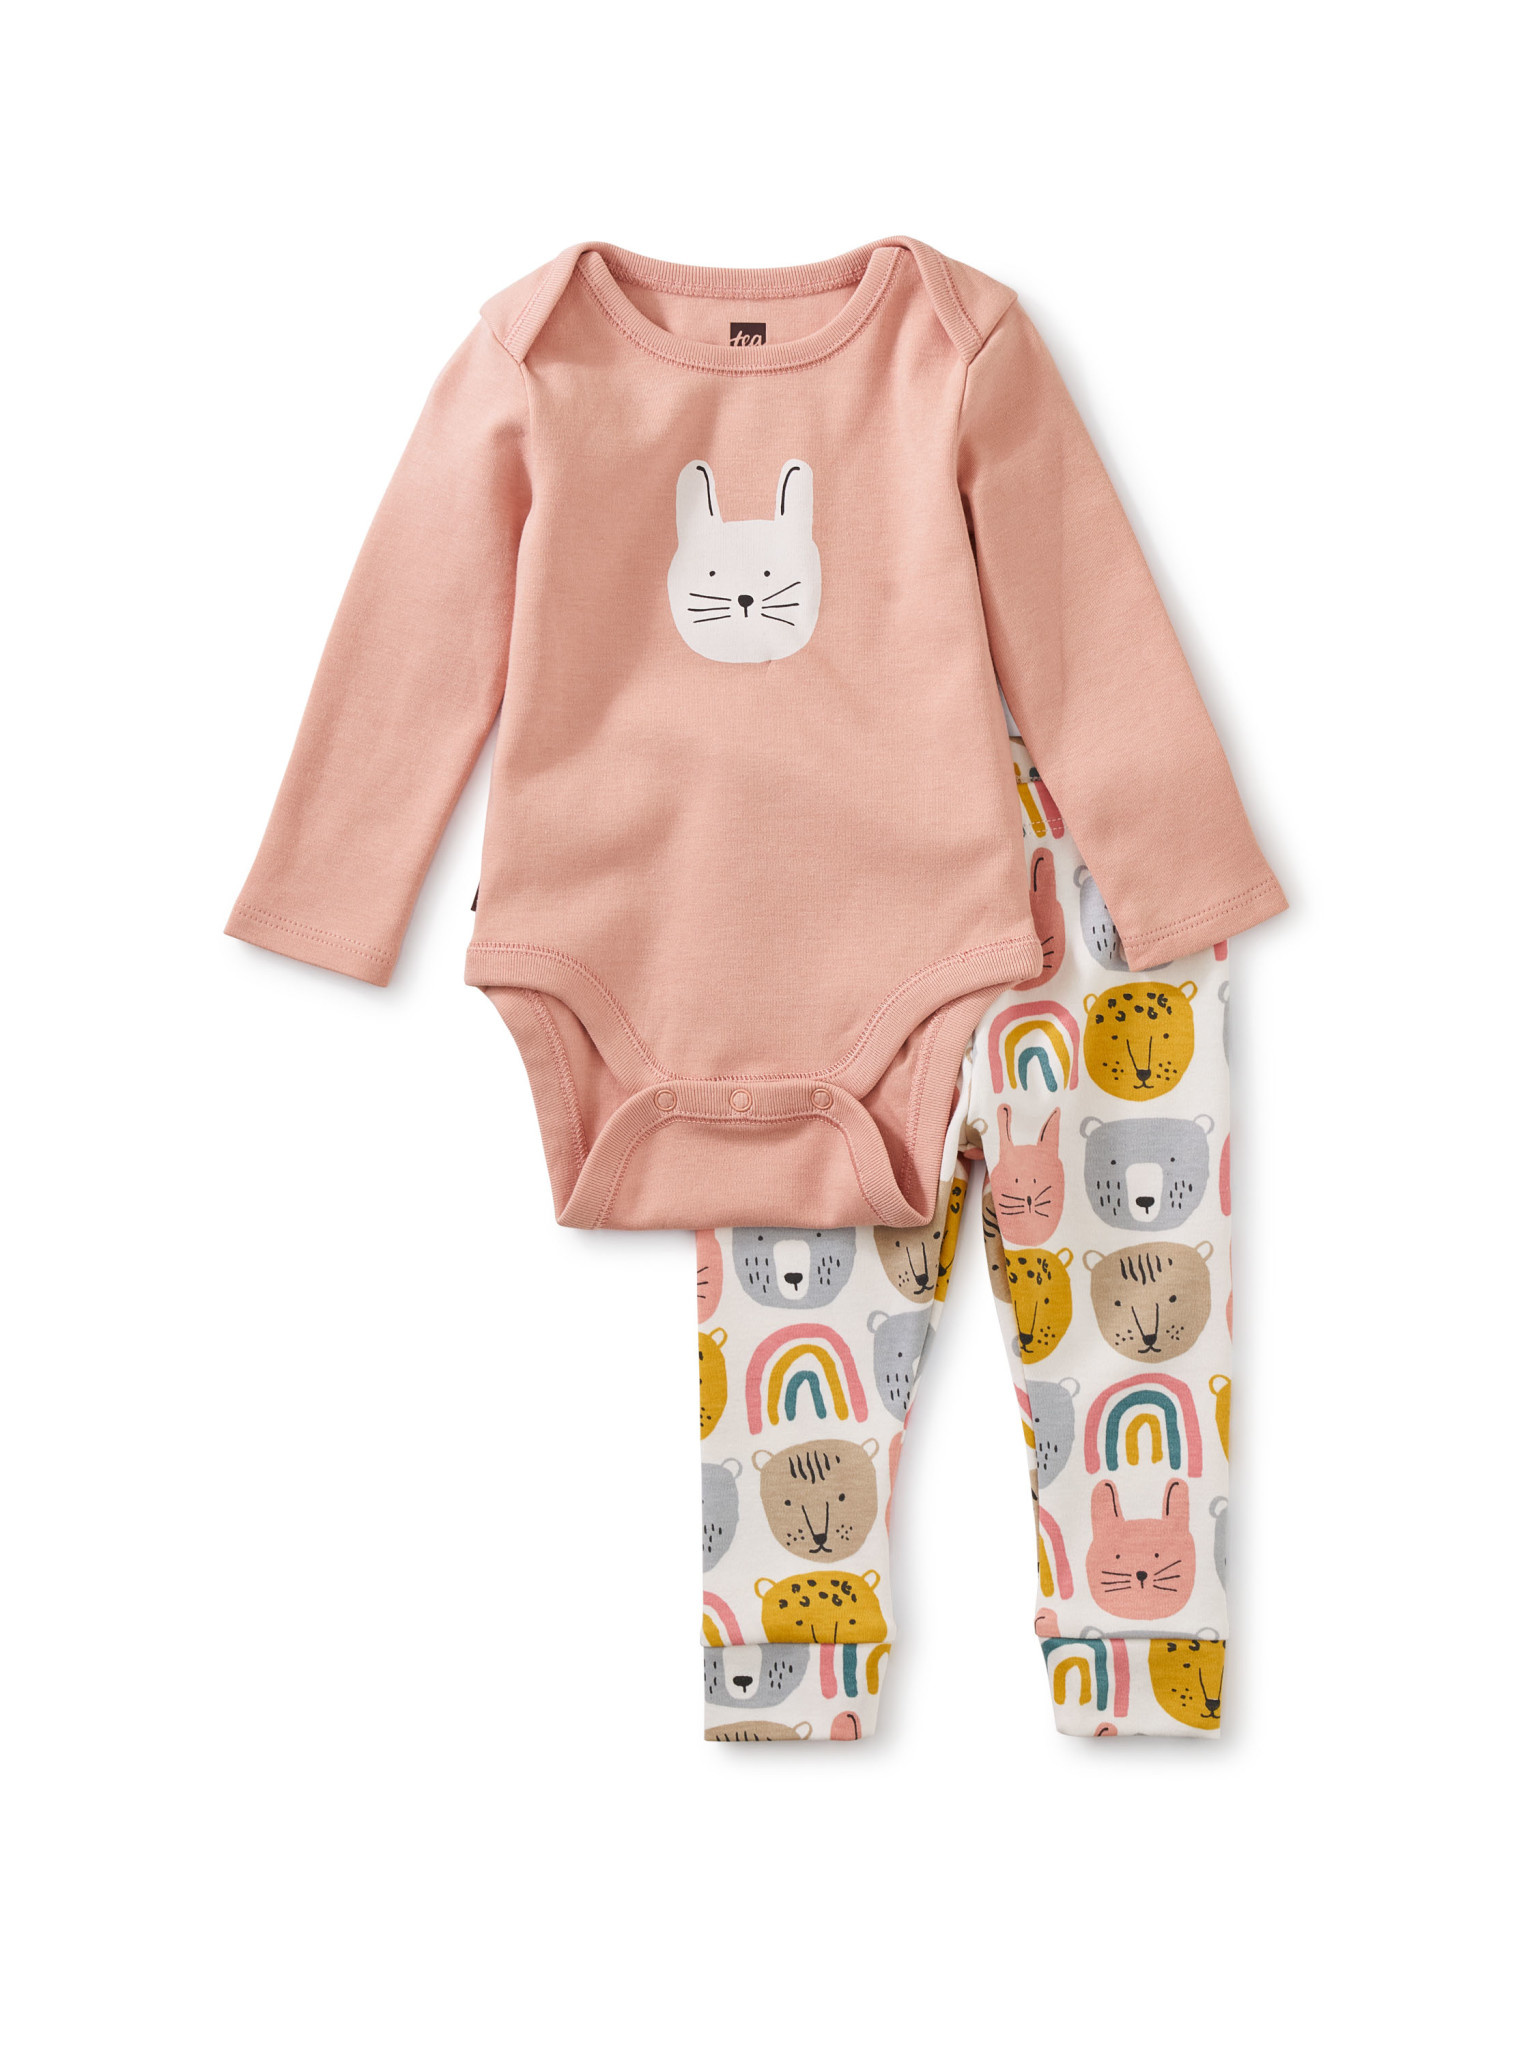 Tea Collection Bodysuit Baby Outfit- Rainbow